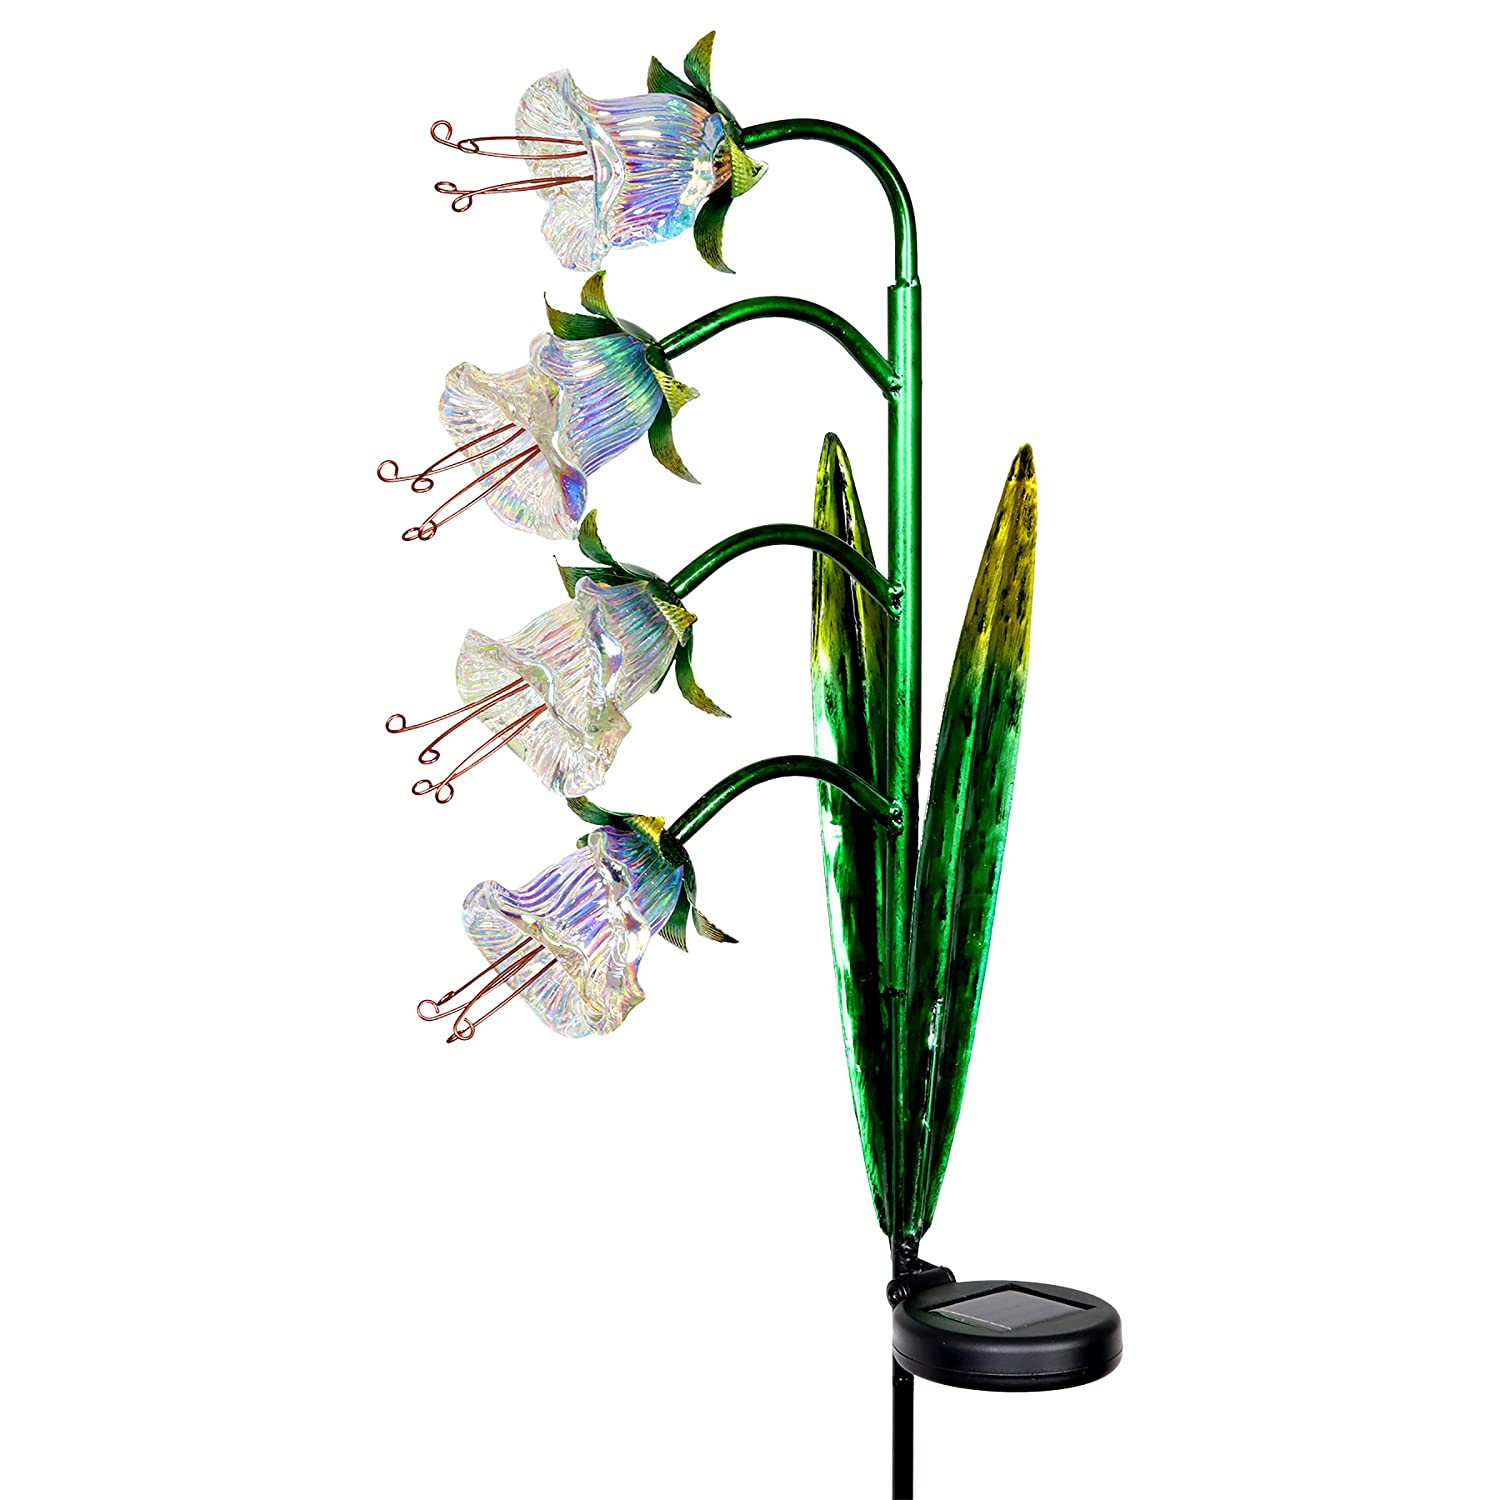 Exhart Solar Cascading Bluebell Flowers Yard Stake in Iridescent Glass Bluebell Decor 3.5 L x 8 W x 33.5 H Bluebells Light Stake Glass Flowers Bluebells Metal Stake w//Solar Outdoor Lights